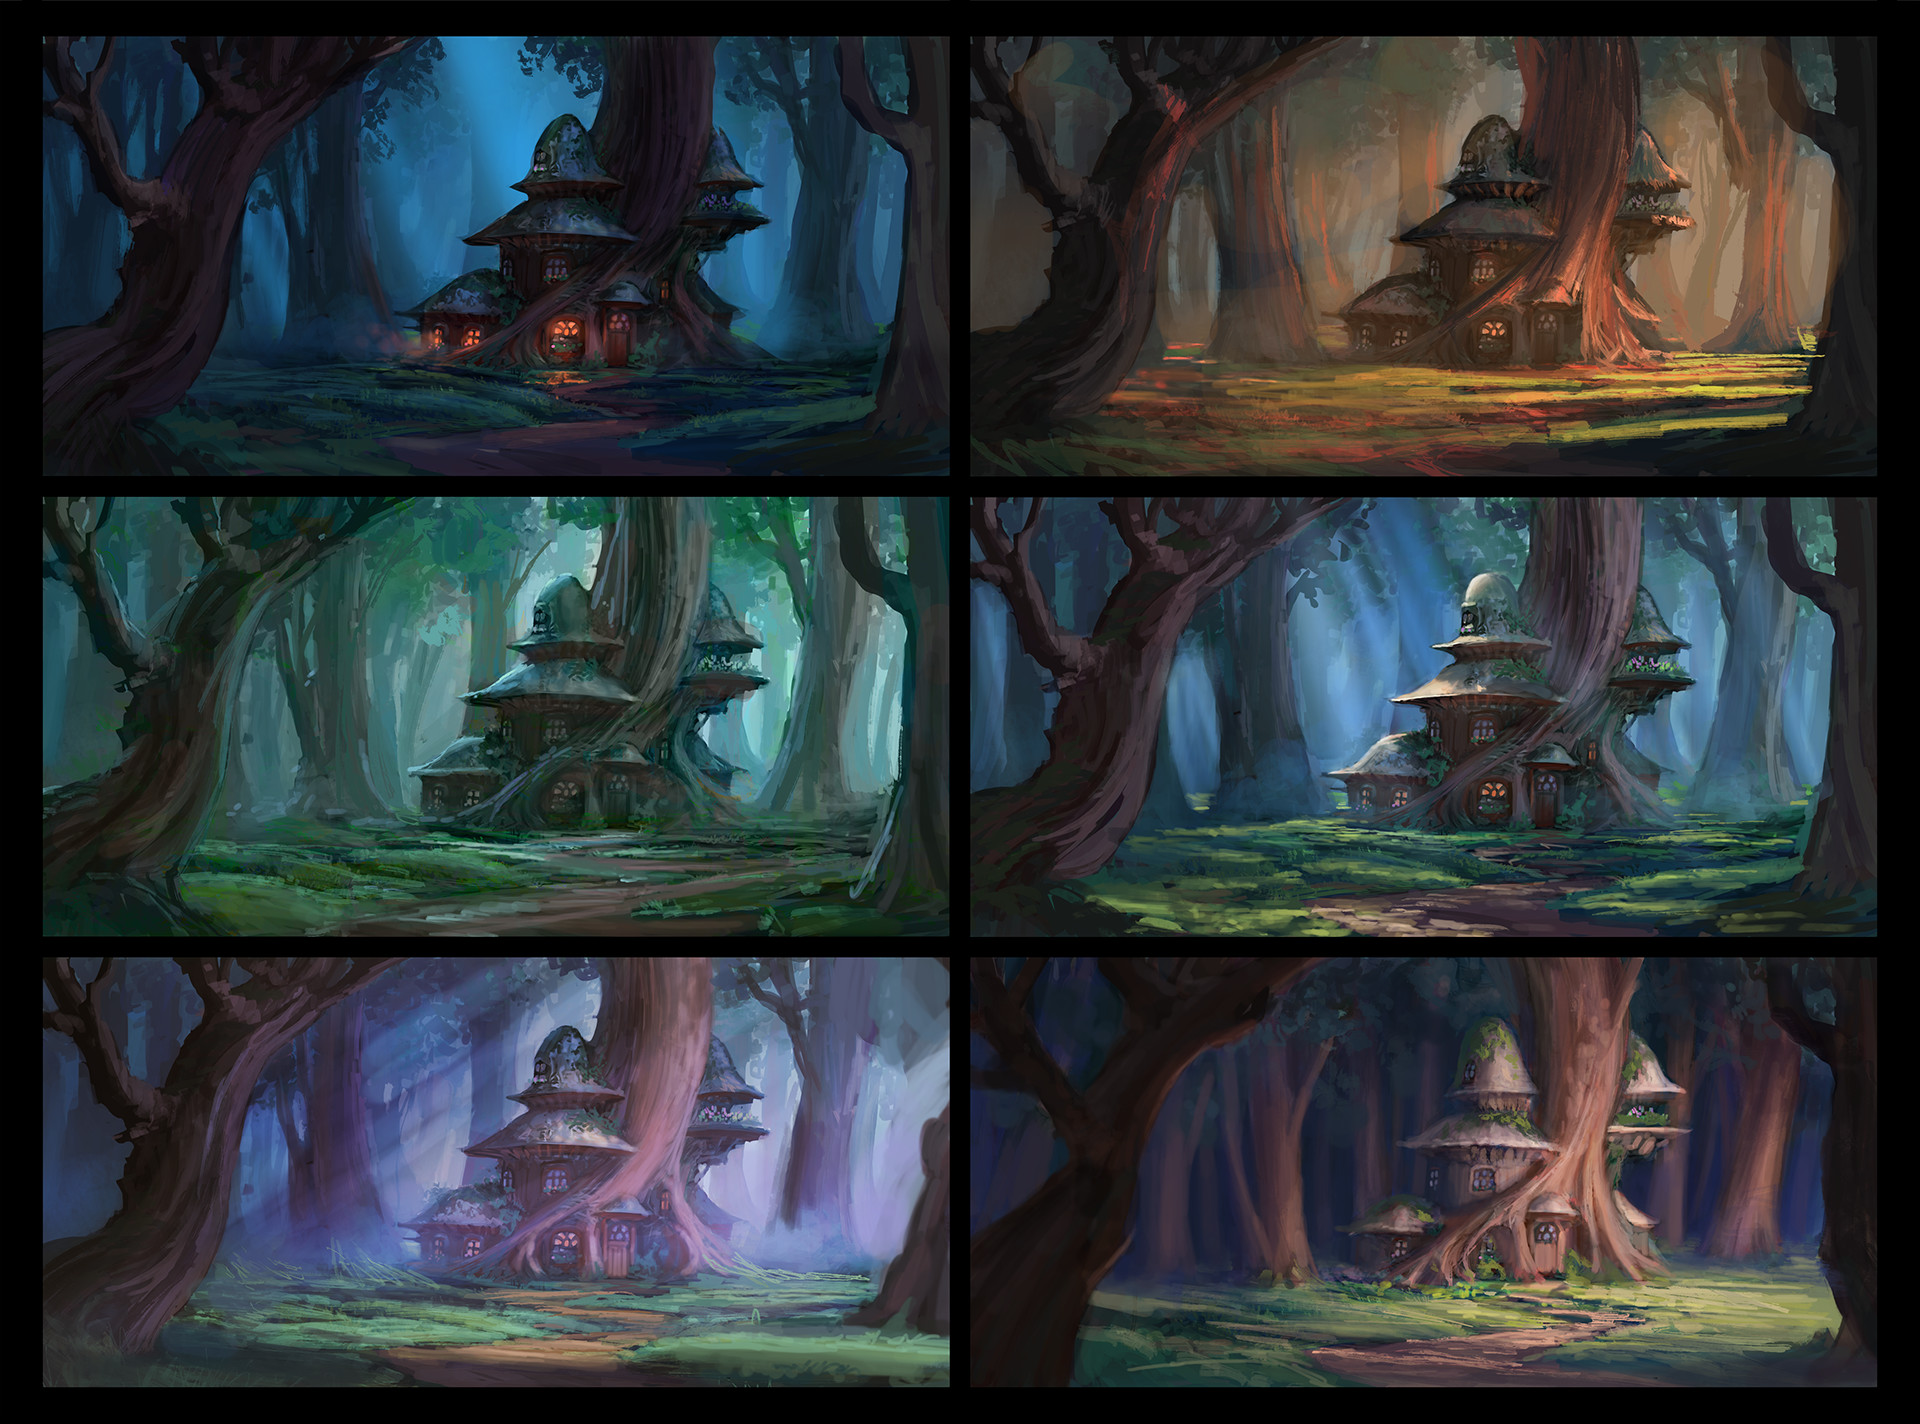 Color and Mood Thumbnails